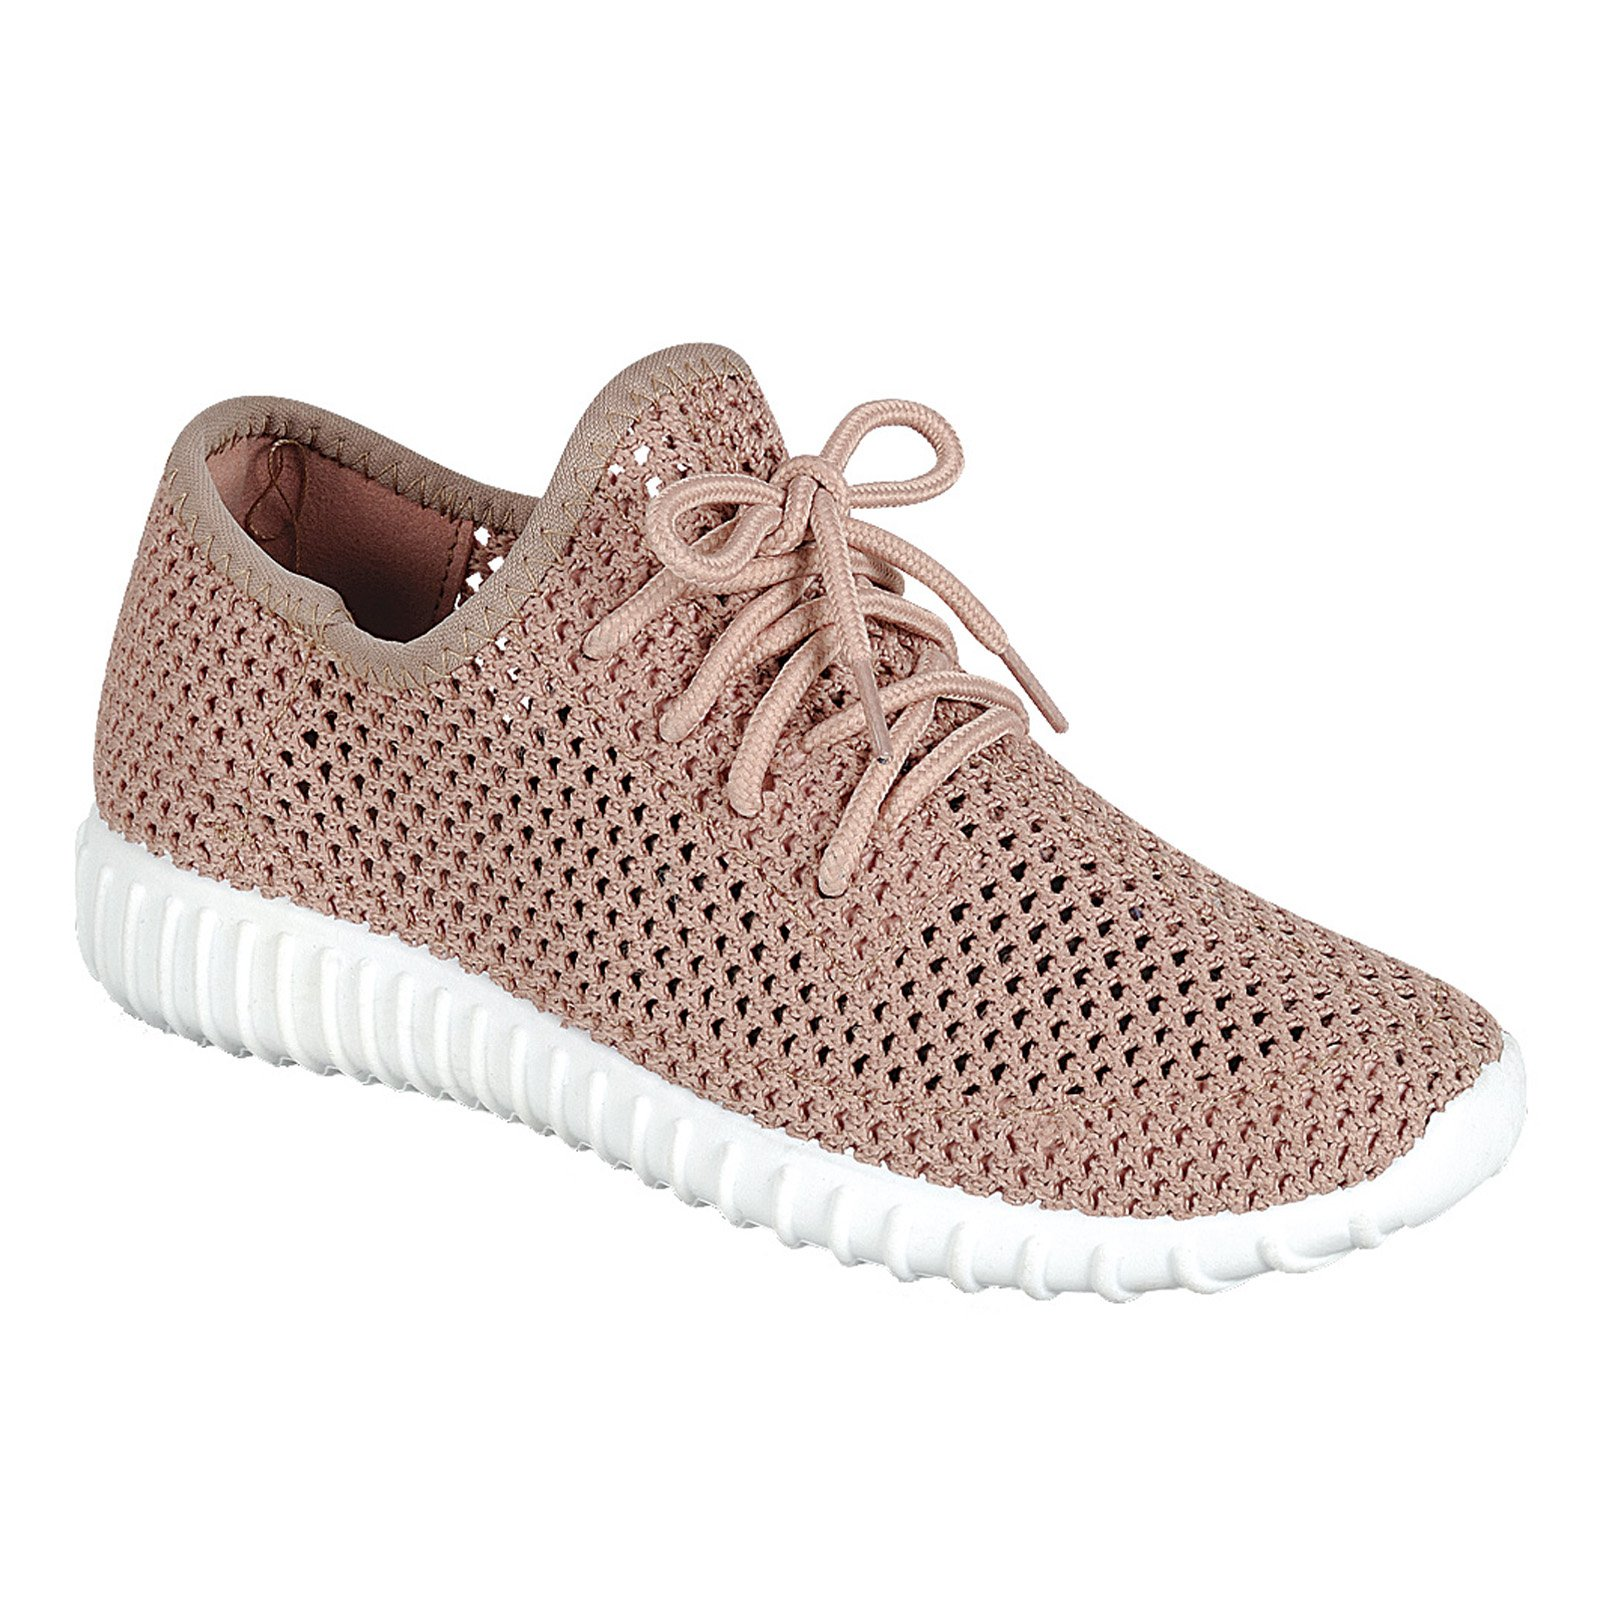 Forever Link Women's Remy Comfort Mesh Lace up Fashion Sneakers Shoes for Women Mauve-26, 7 B(M) US